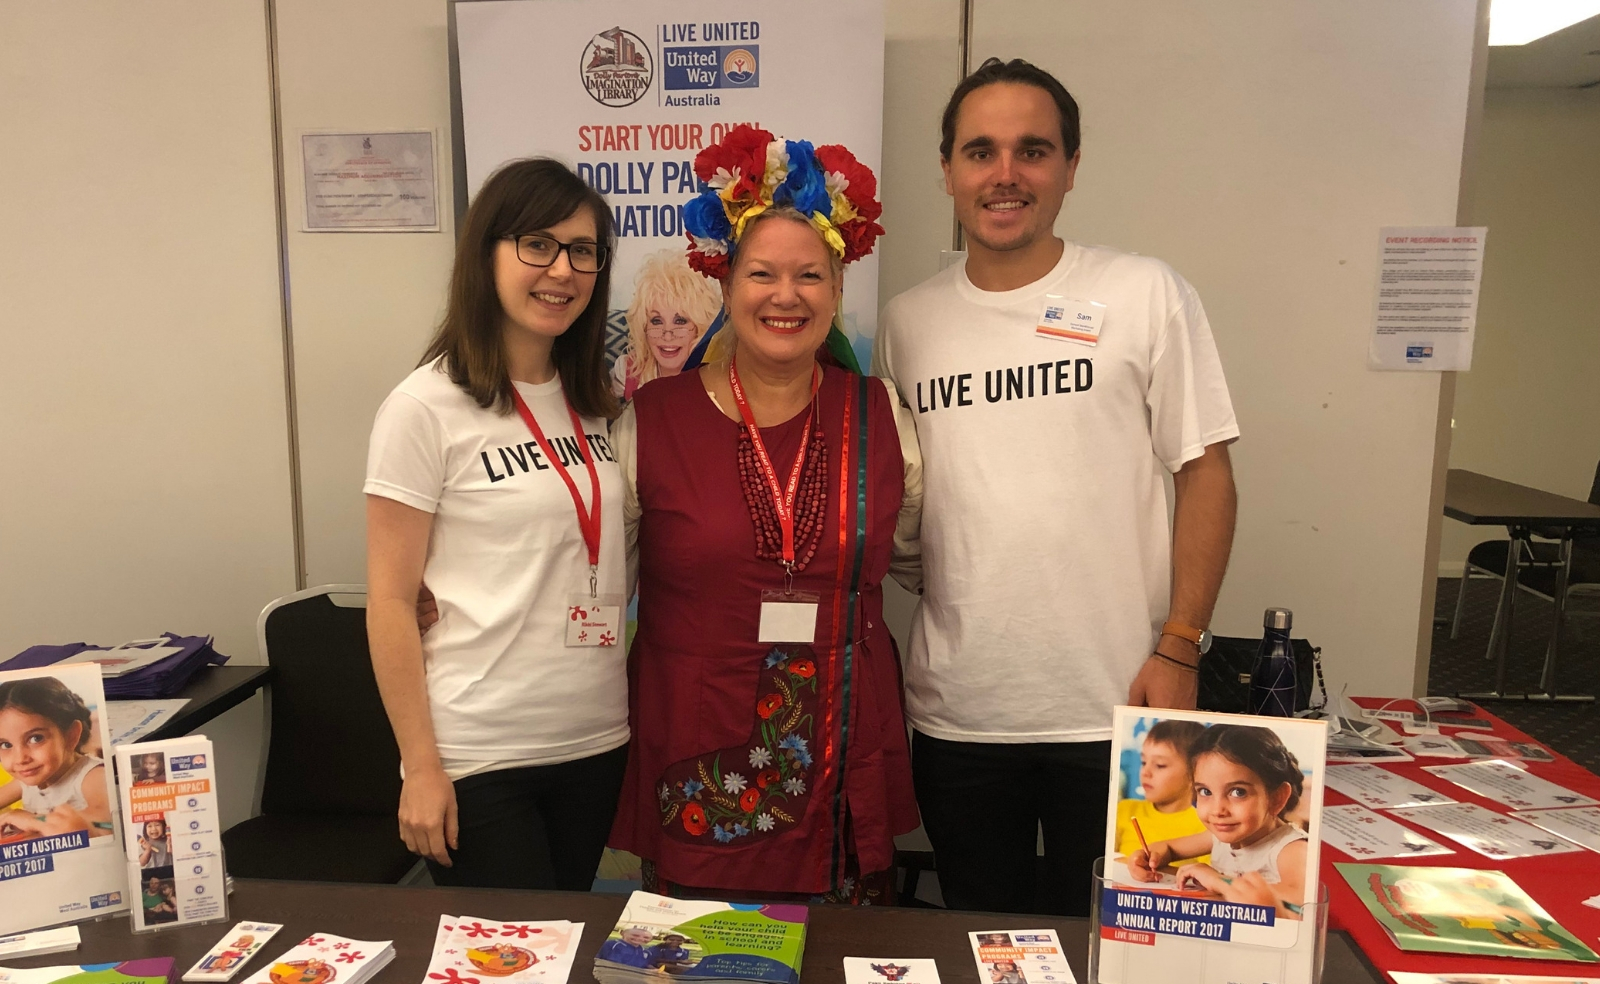 People with 'Live United' printed on their Tshirts